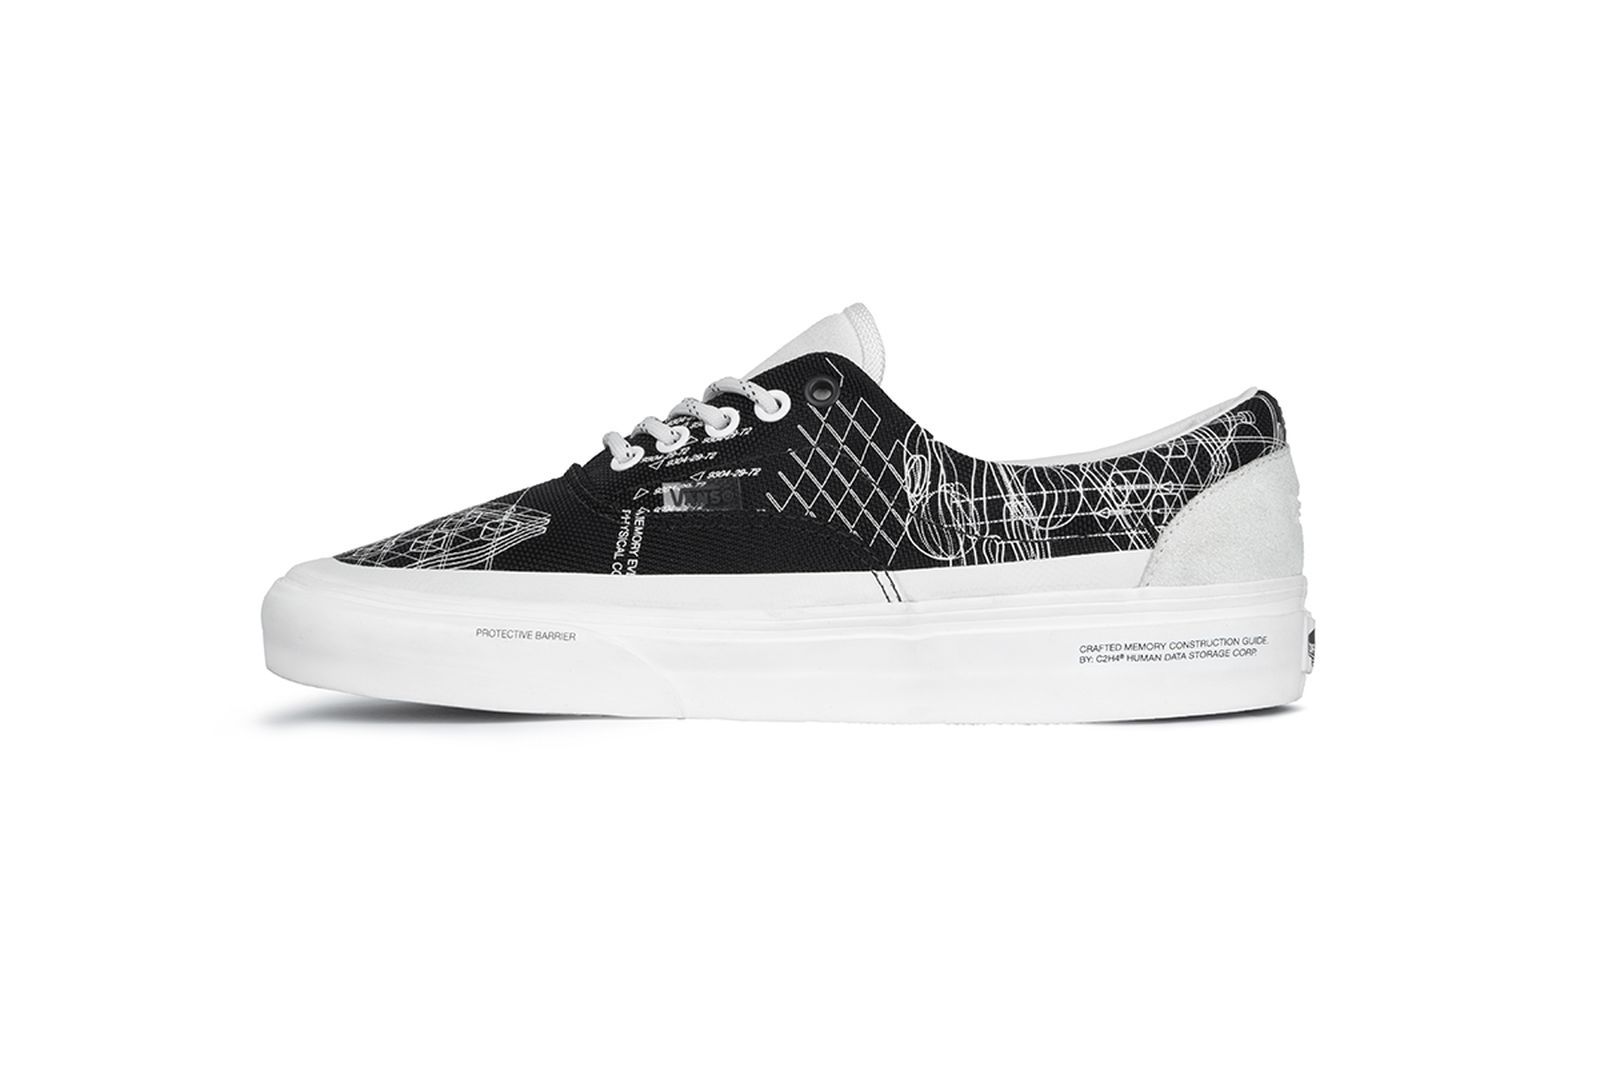 c2h4-vans-the-imagination-of-future-2-release-date-price-1-a-05